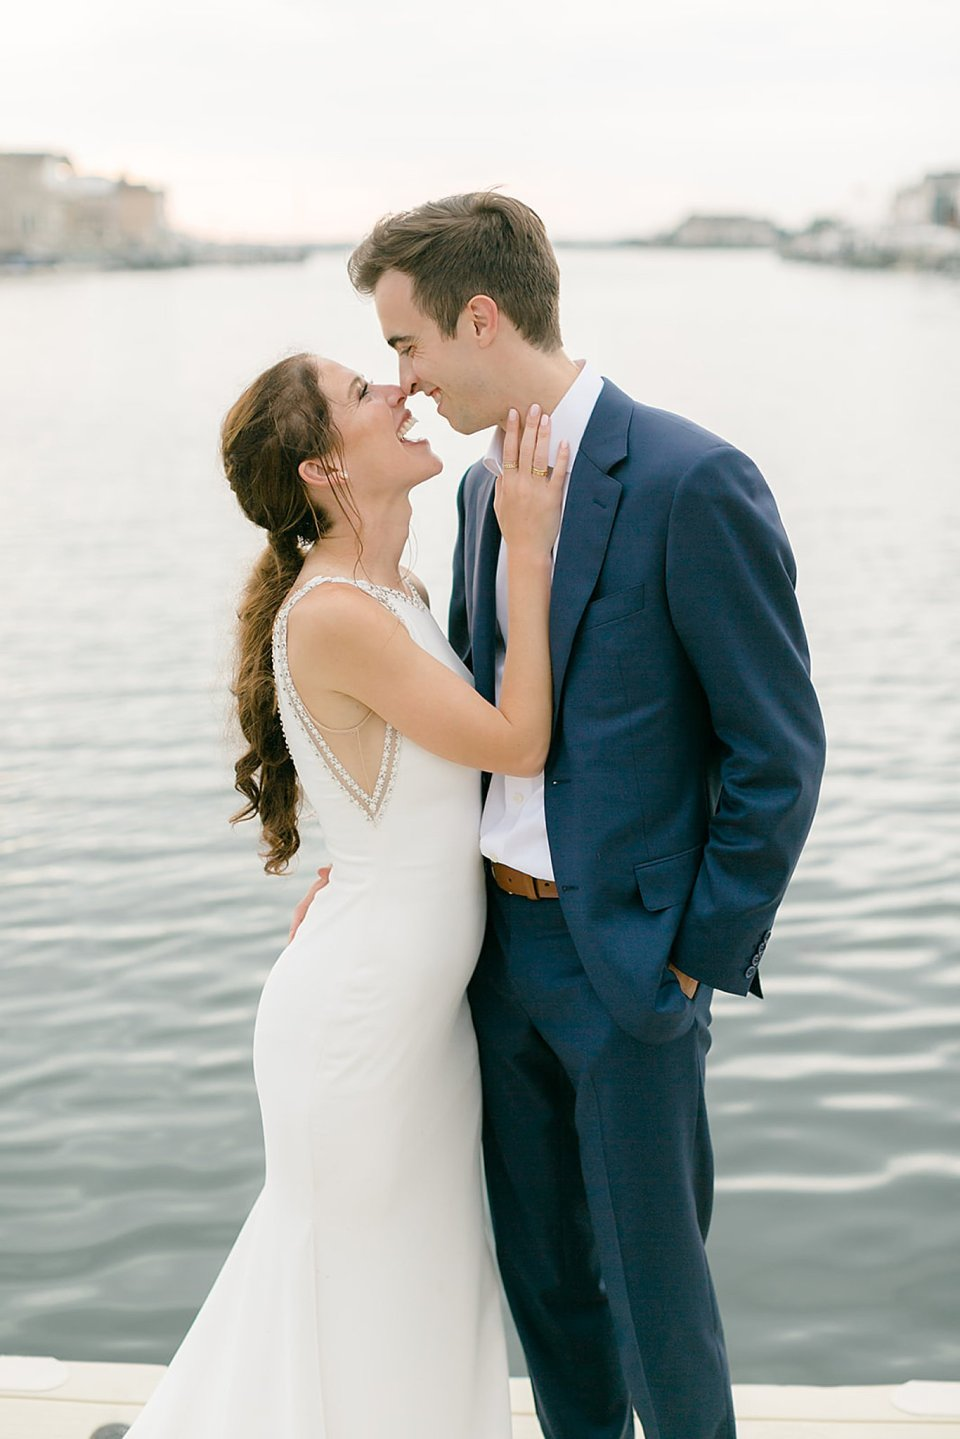 The Reeds at Shelter Haven Wedding Photography by Magdalena Studios KylieChristian 0043